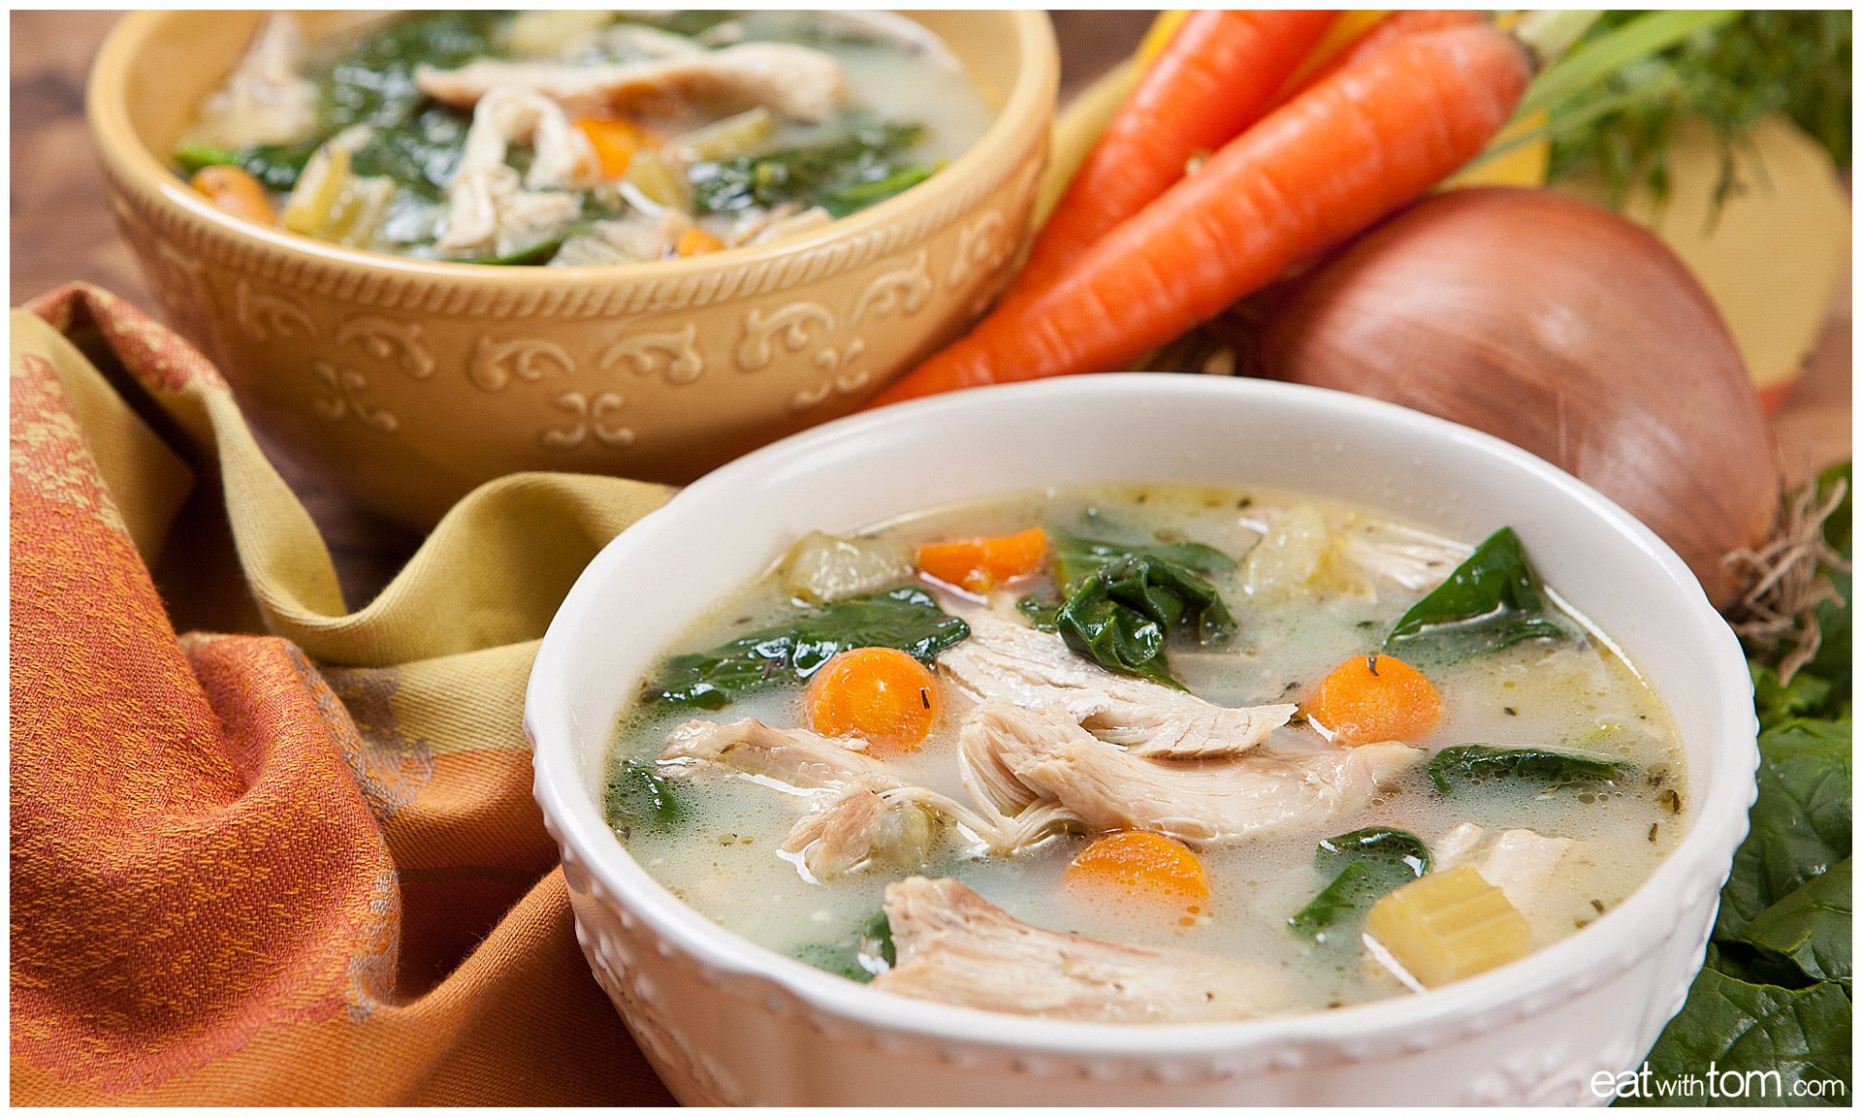 Chicken Soup Recipe - Pressure Cooker Method - power pressure cooker xl recipes chicken